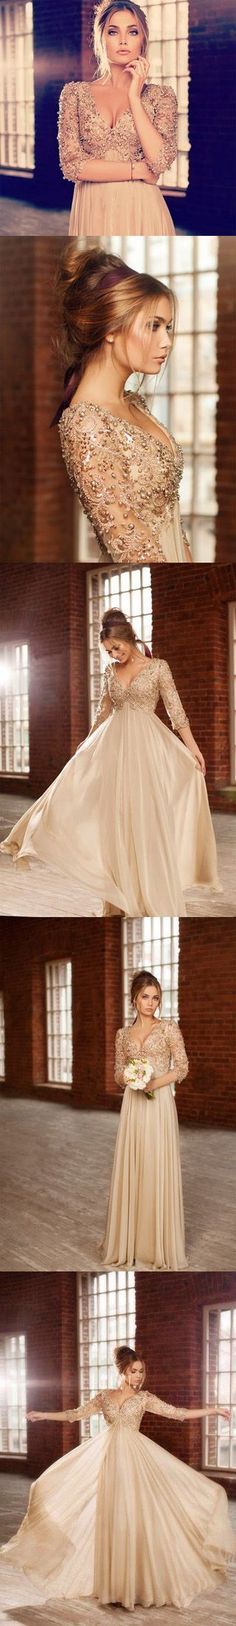 Beautiful Long Prom Dresses 2014 New Arrival Deep V-neck 34 Sleeves Beaded A-line Chiffon Evening Dresses